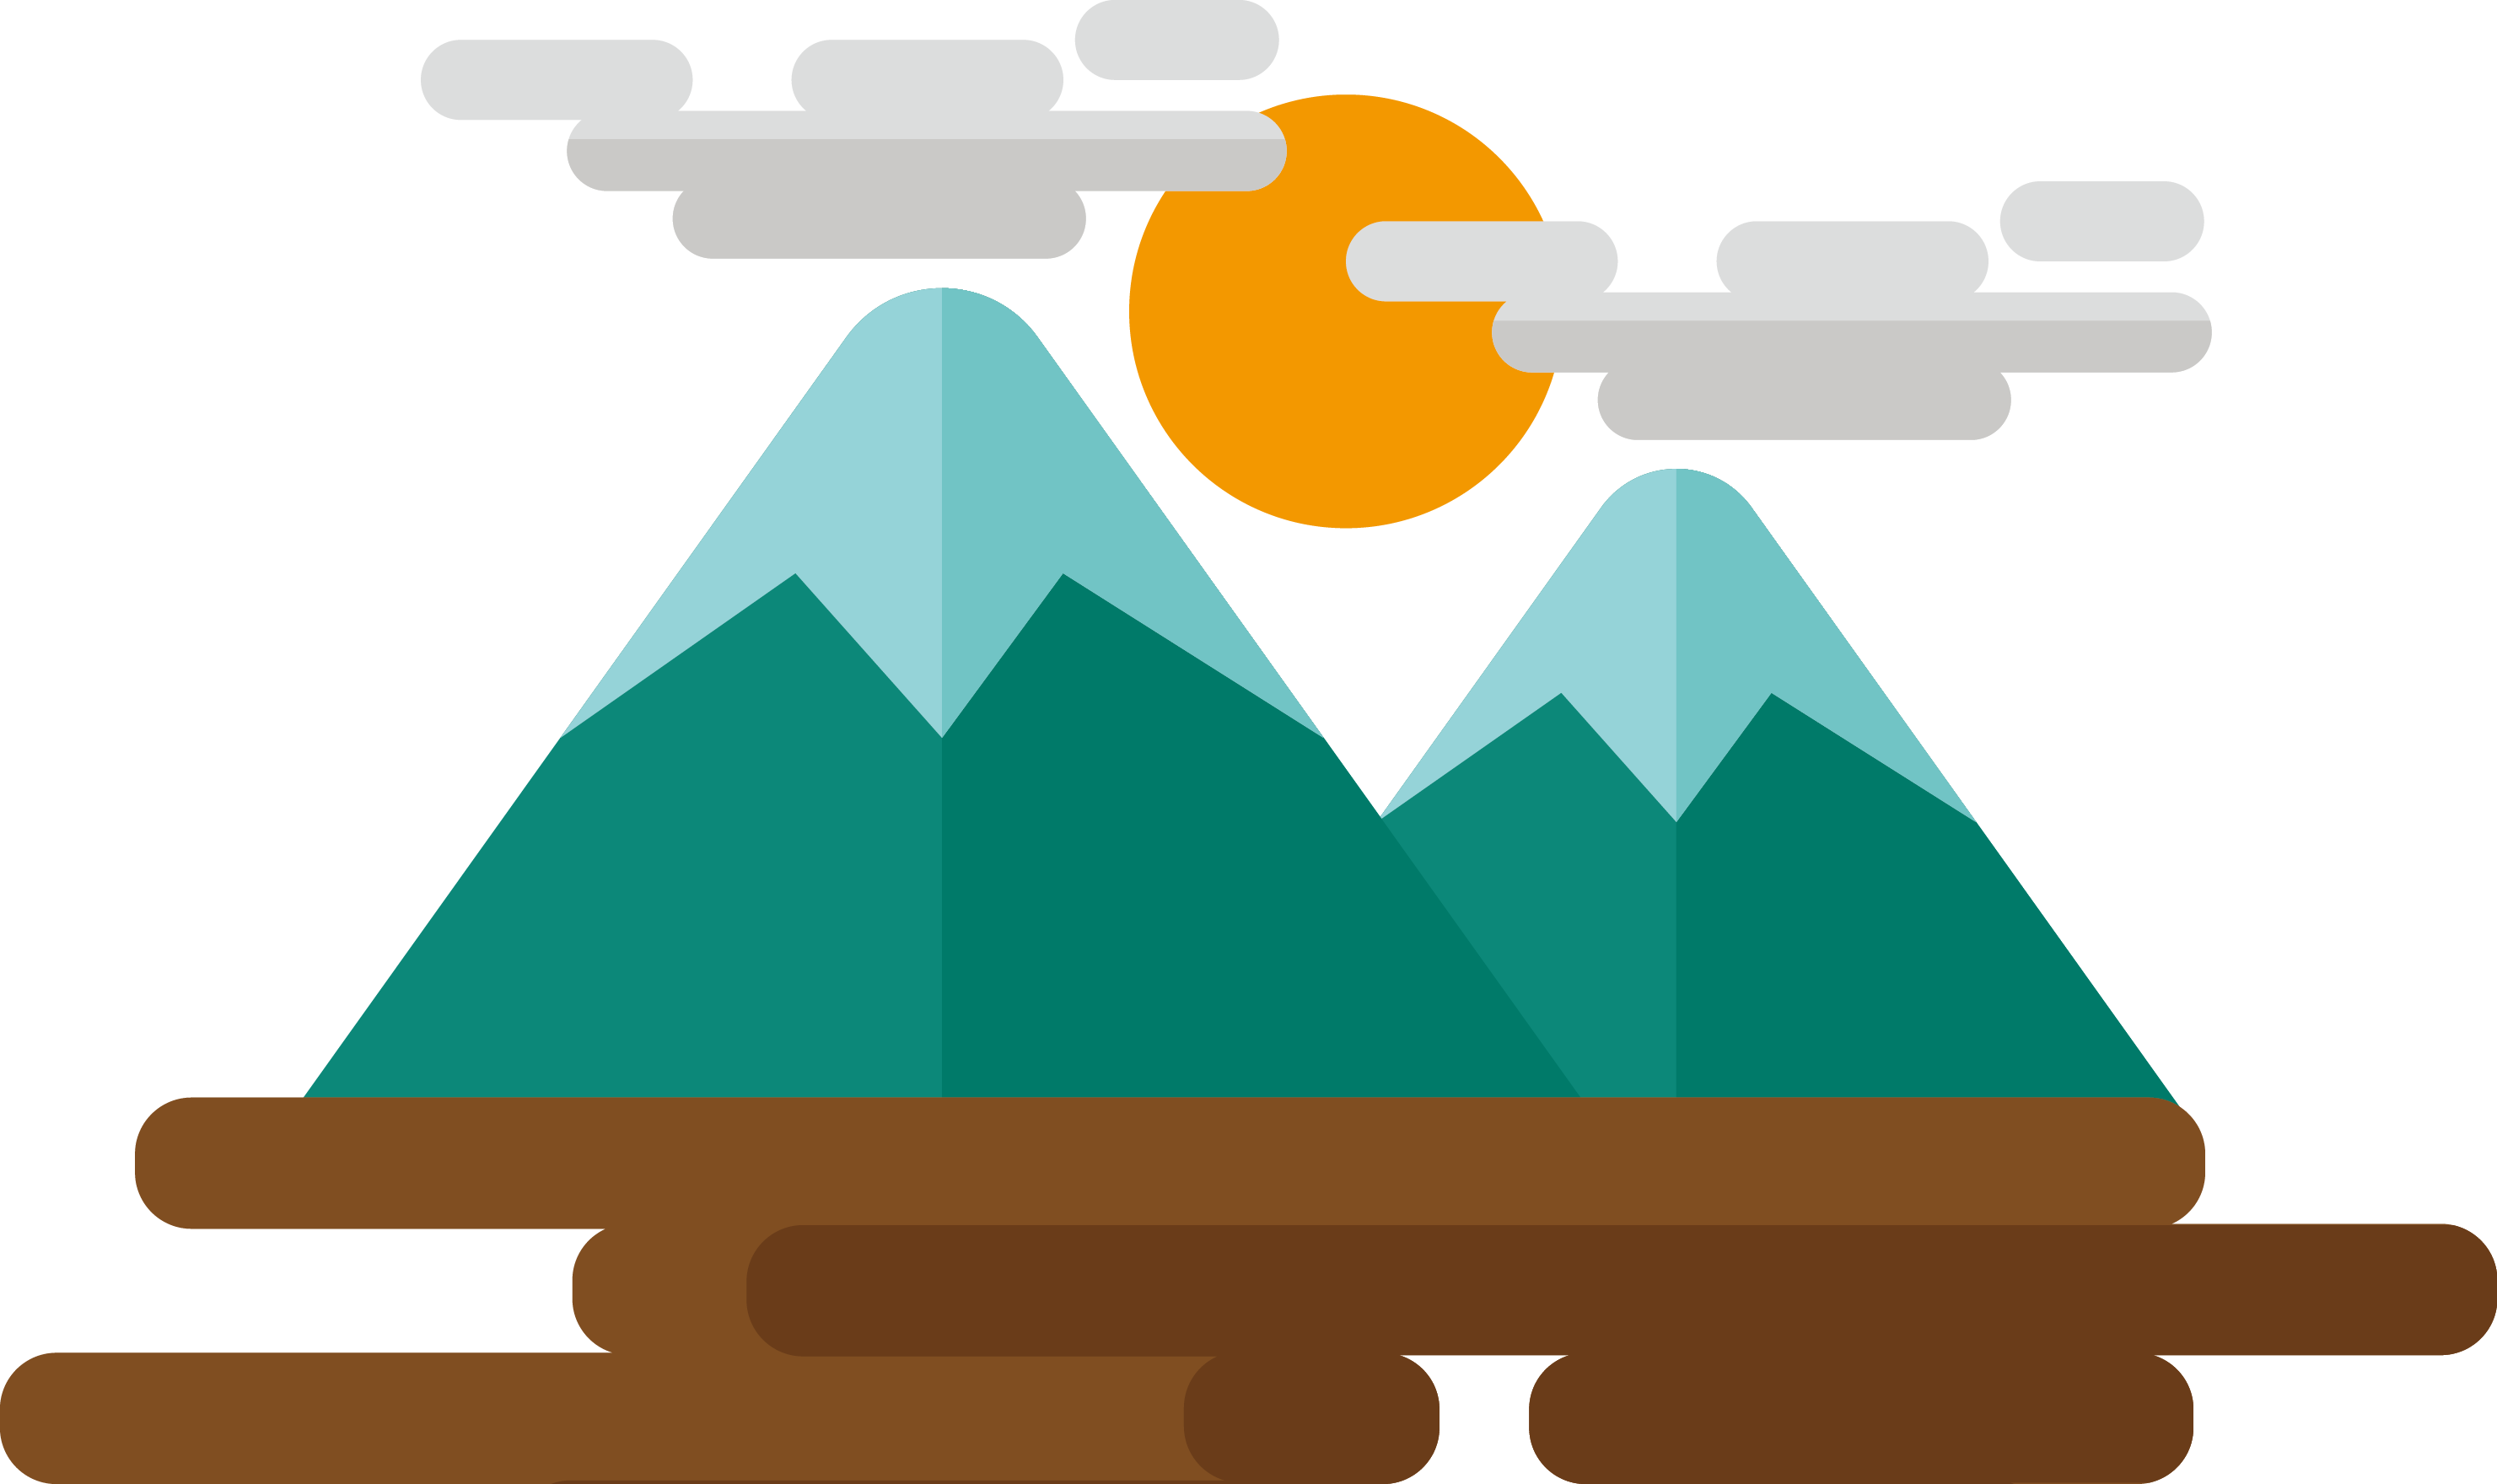 Mountain cartoon png. Icon cute transprent free